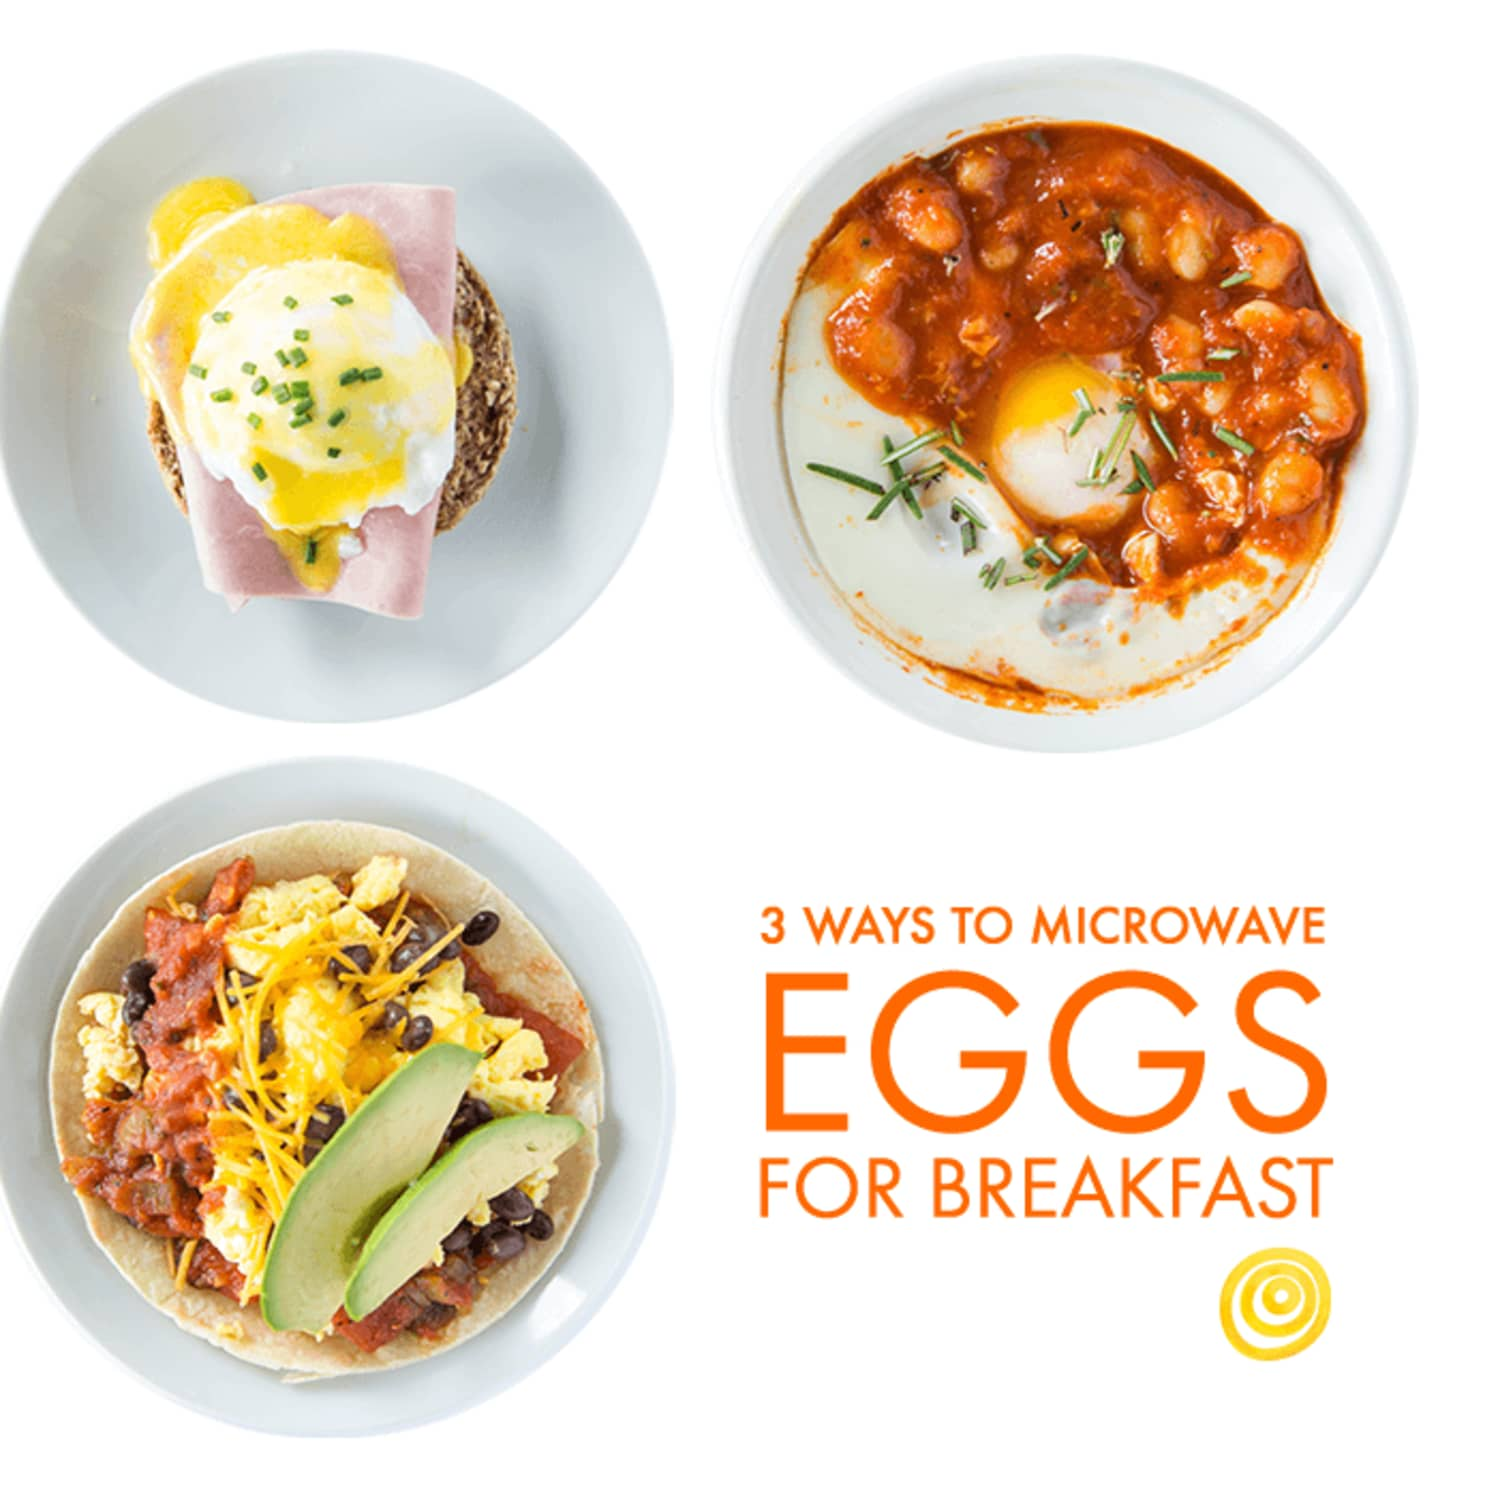 3 ways to microwave eggs for breakfast